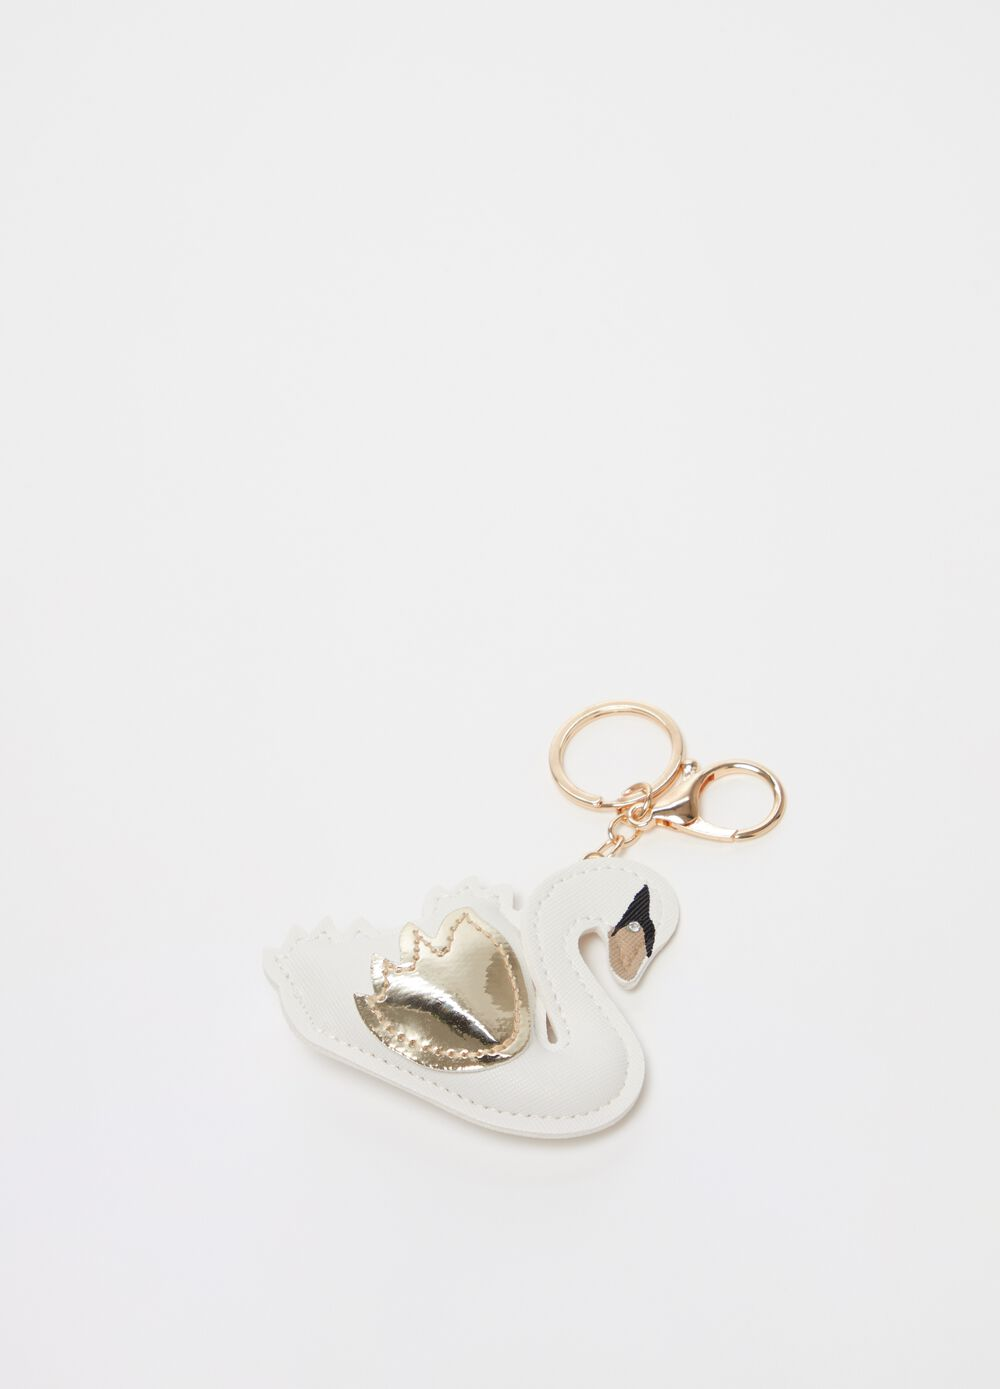 Two-tone swan key chain with diamantés